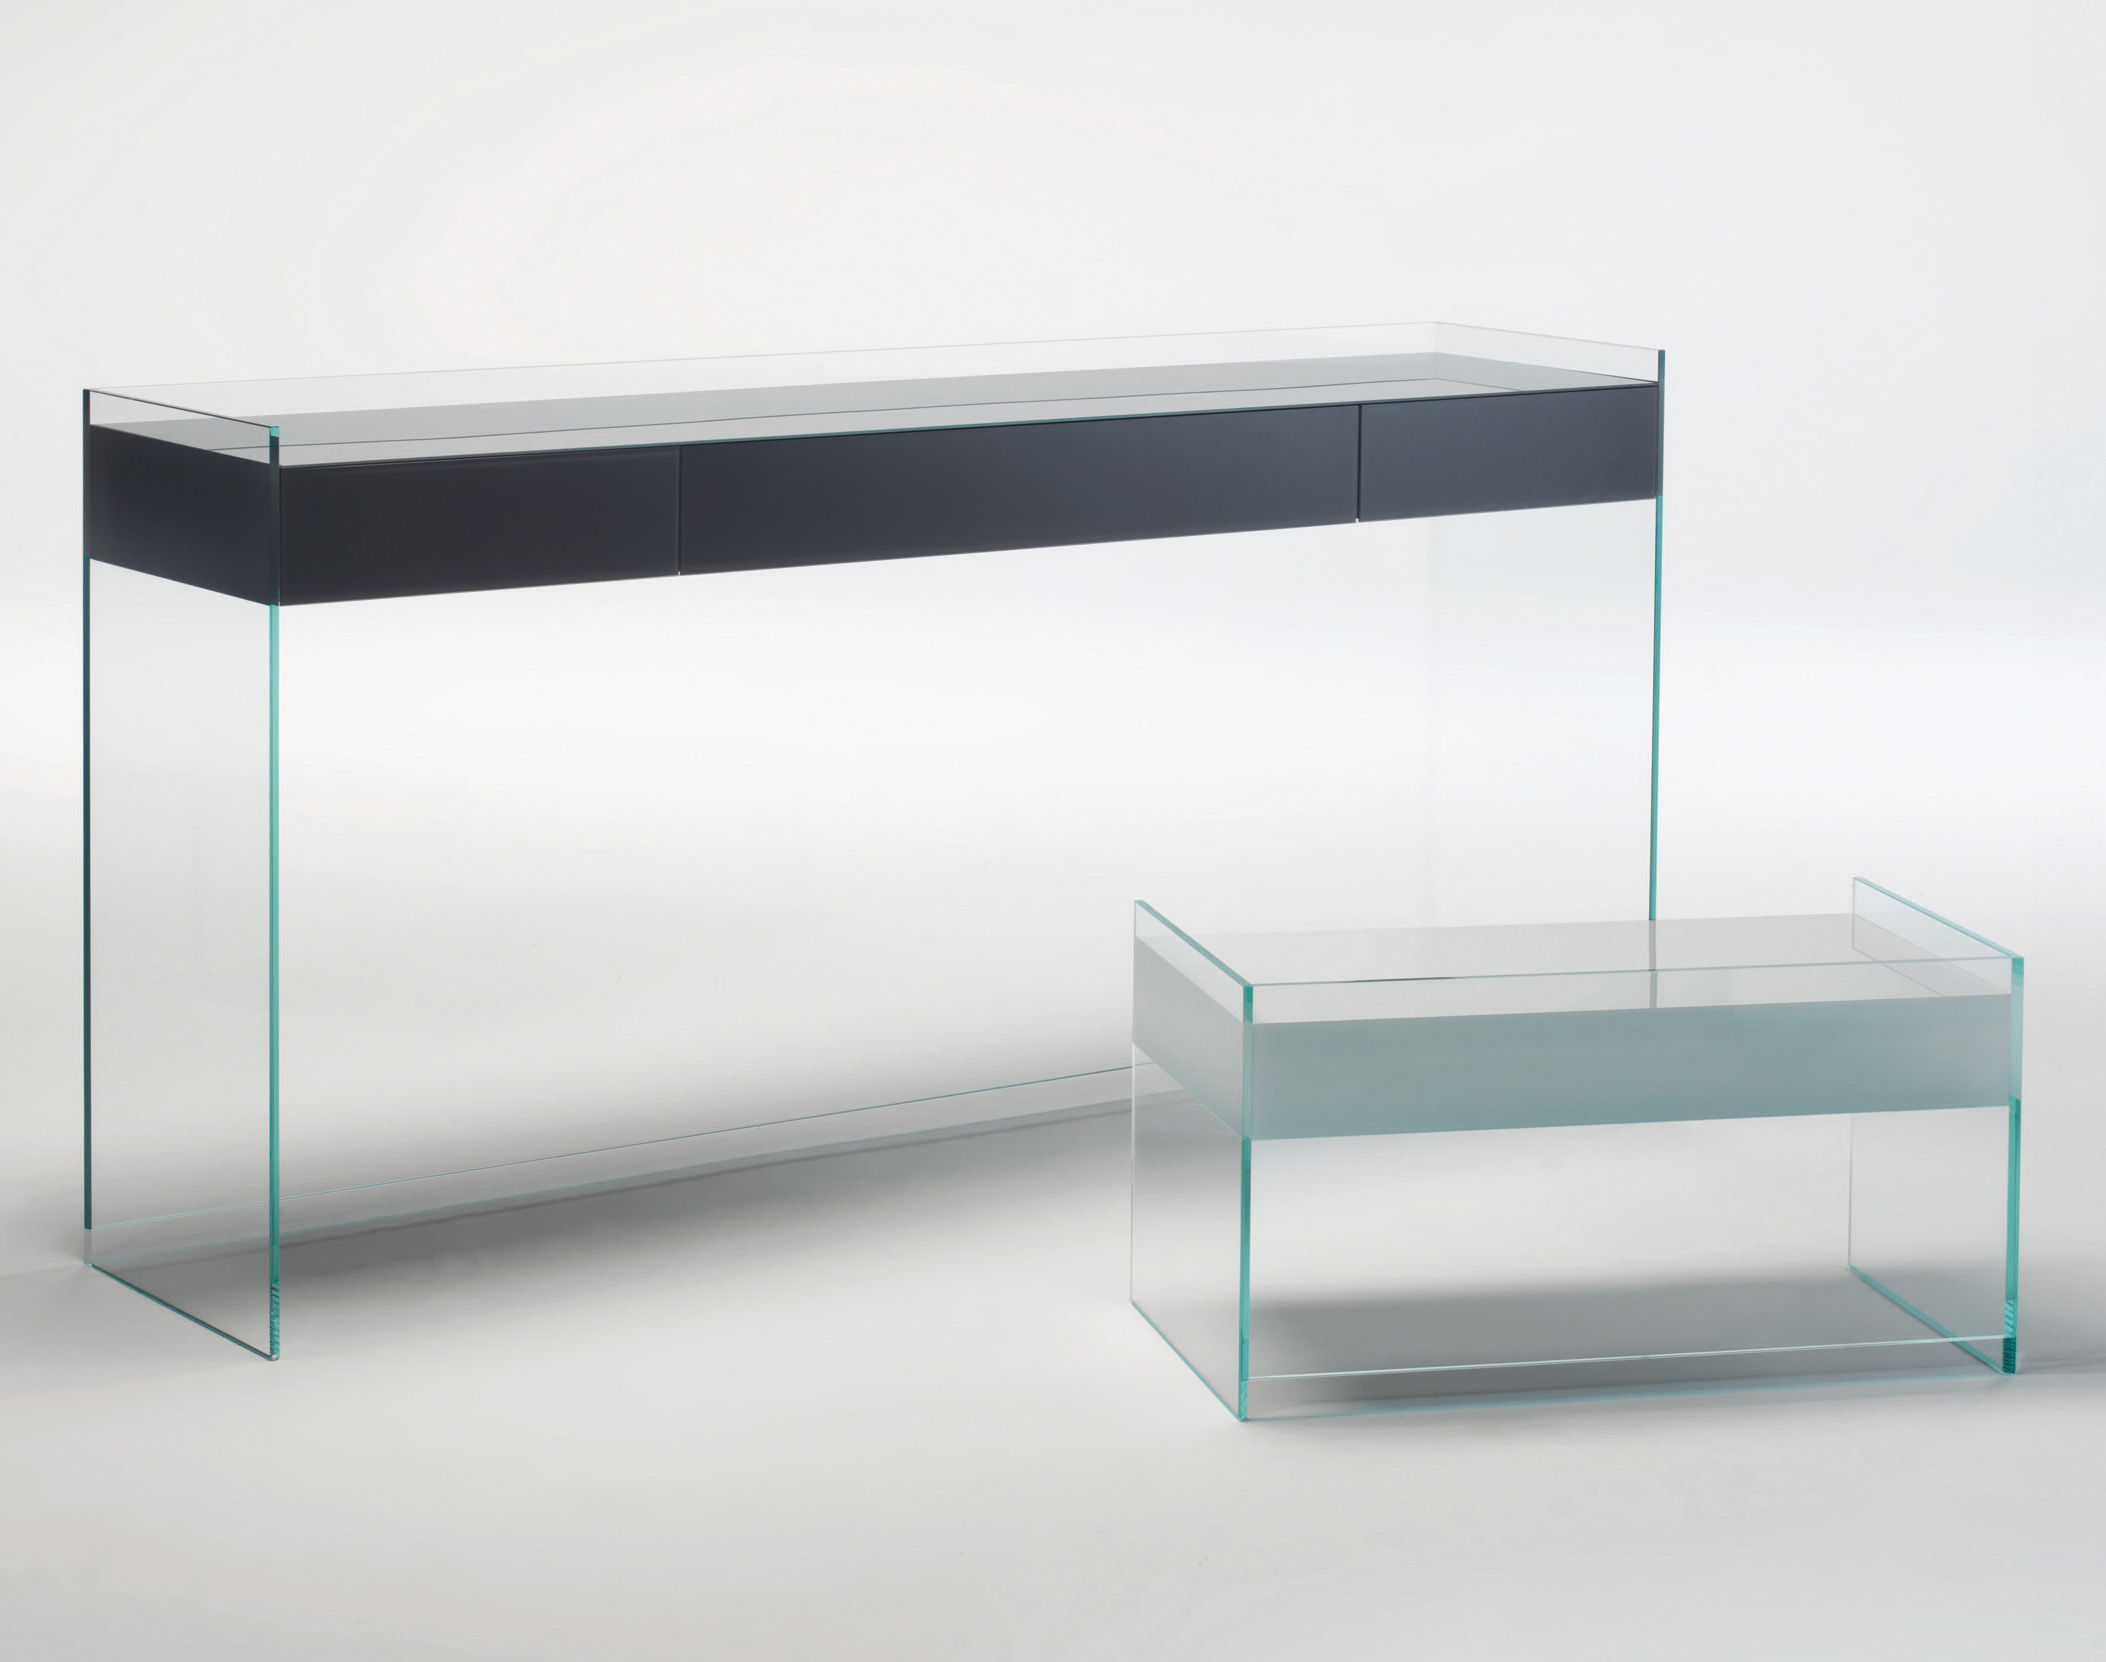 float 3 schubladen h 90 cm glas italia konsole. Black Bedroom Furniture Sets. Home Design Ideas